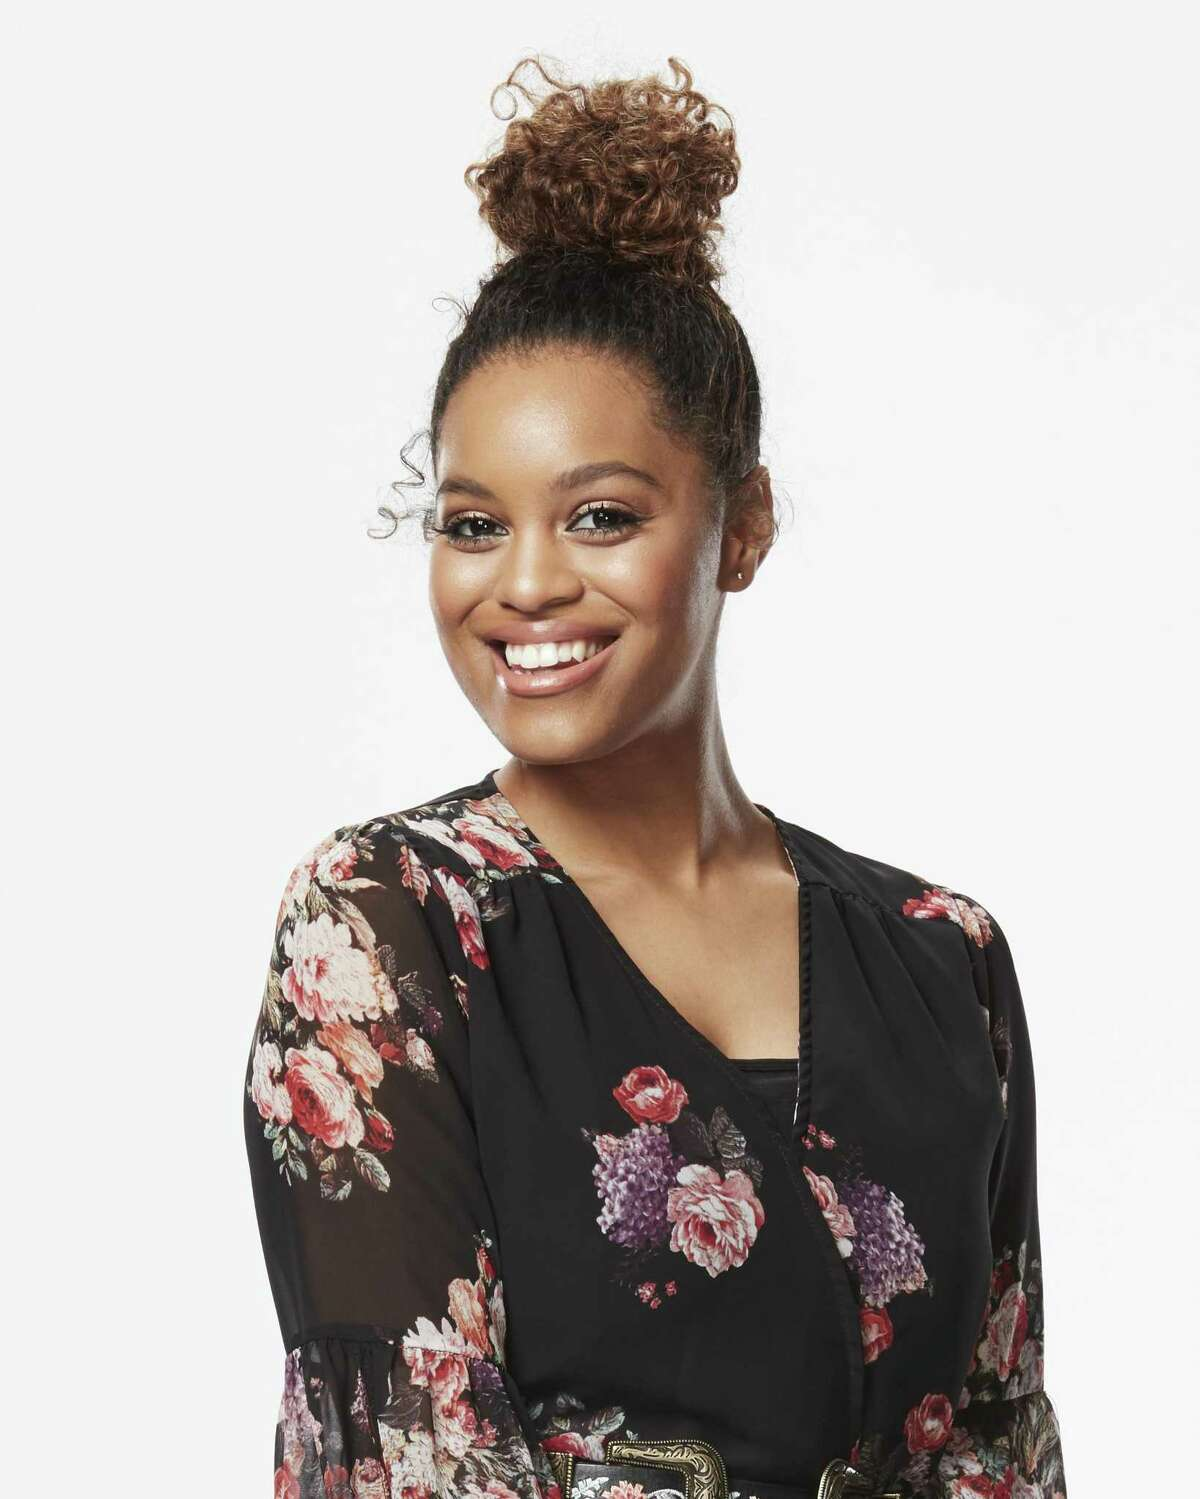 """Spensha Baker of San Antonio will show what she's got during the final battle rounds of NBC's competition show """"The Voice."""""""